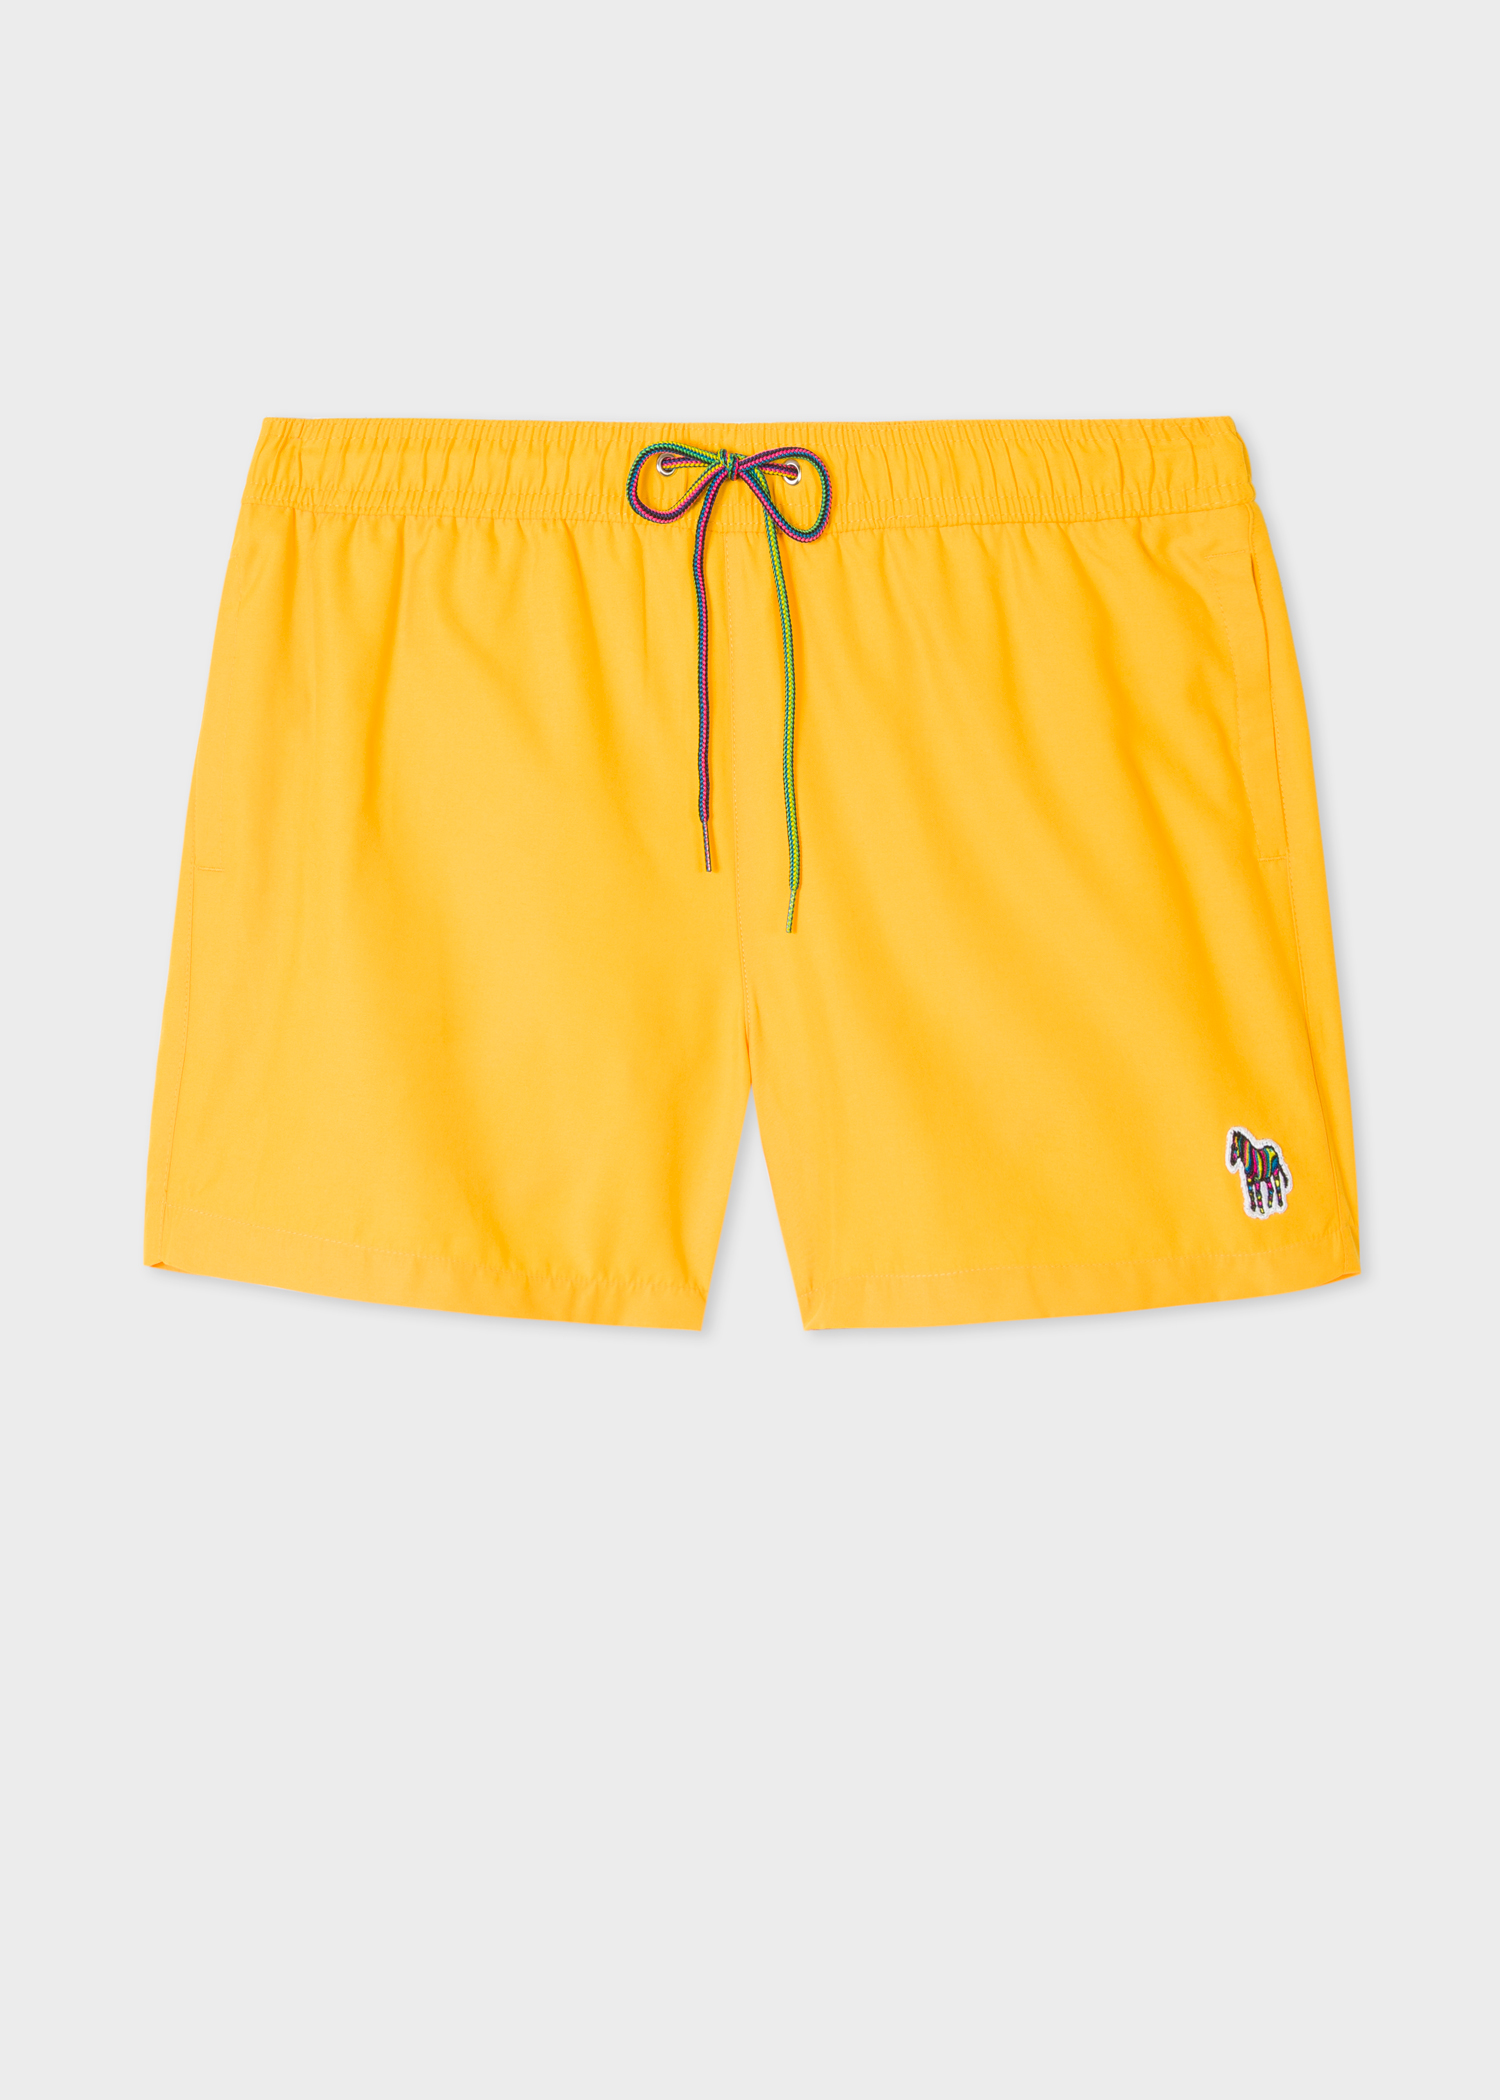 ae7f926428 Men's Yellow Zebra Logo Swim Shorts - Paul Smith US